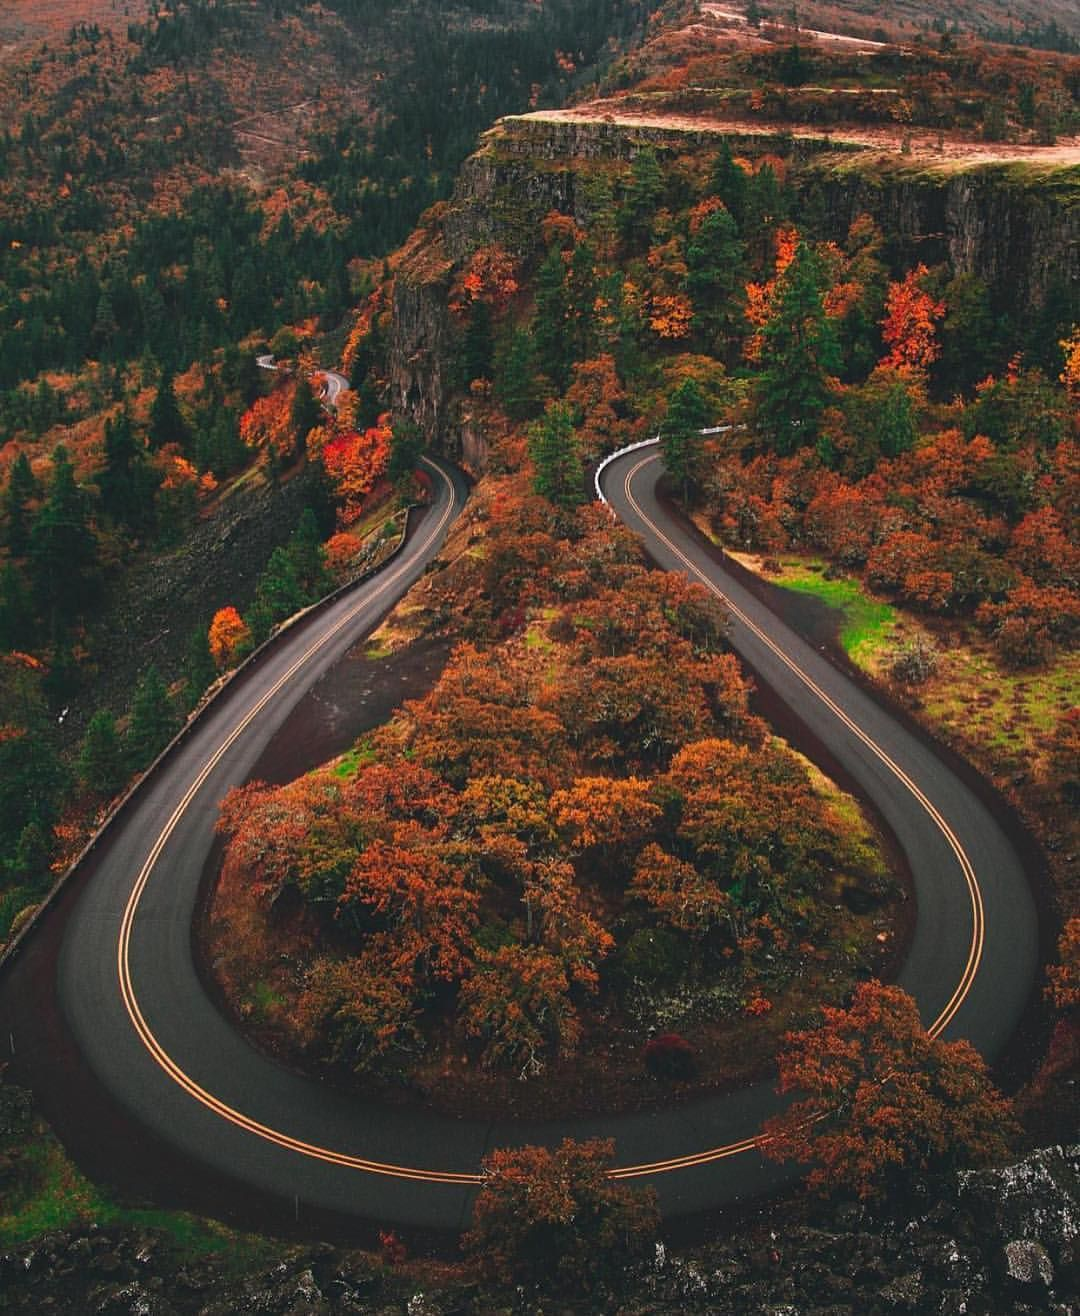 Colors Are A Changing At Rowena Crest Photo By Abstractive Croig Caferacersofinstagram At Rowena Crest Beautiful Roads Camping World Travel Beauty